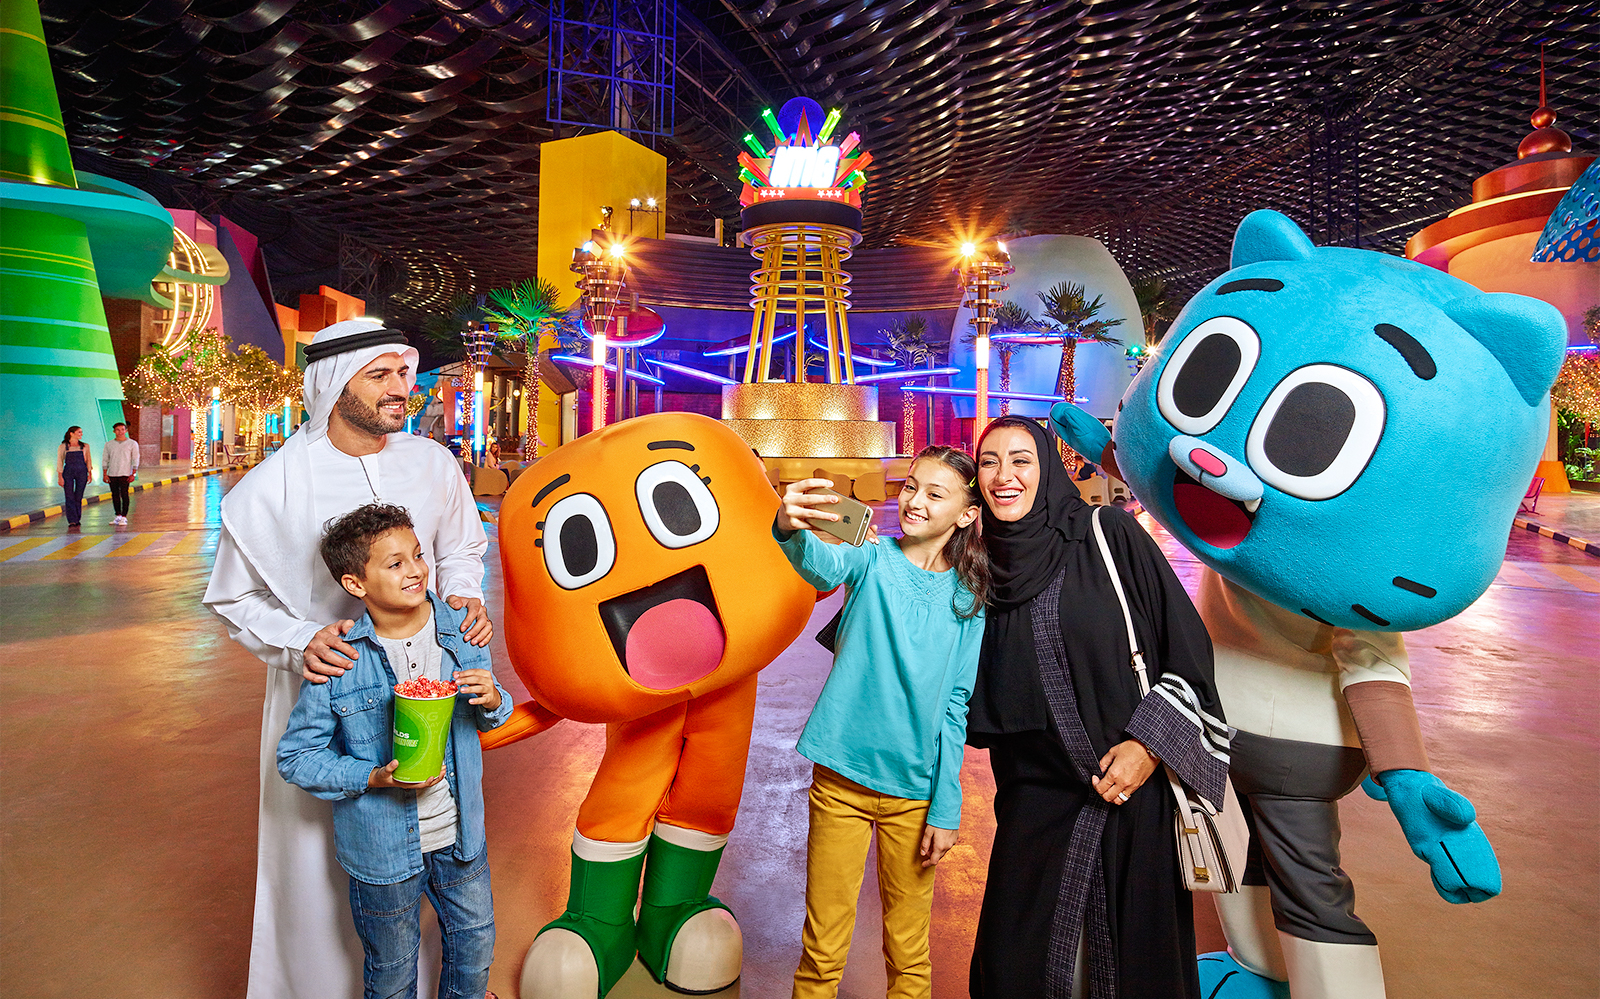 491659e3 5886 4e38 988c 3c5c603e220c 10432 dubai img worlds of adventure   uae resident offer 04